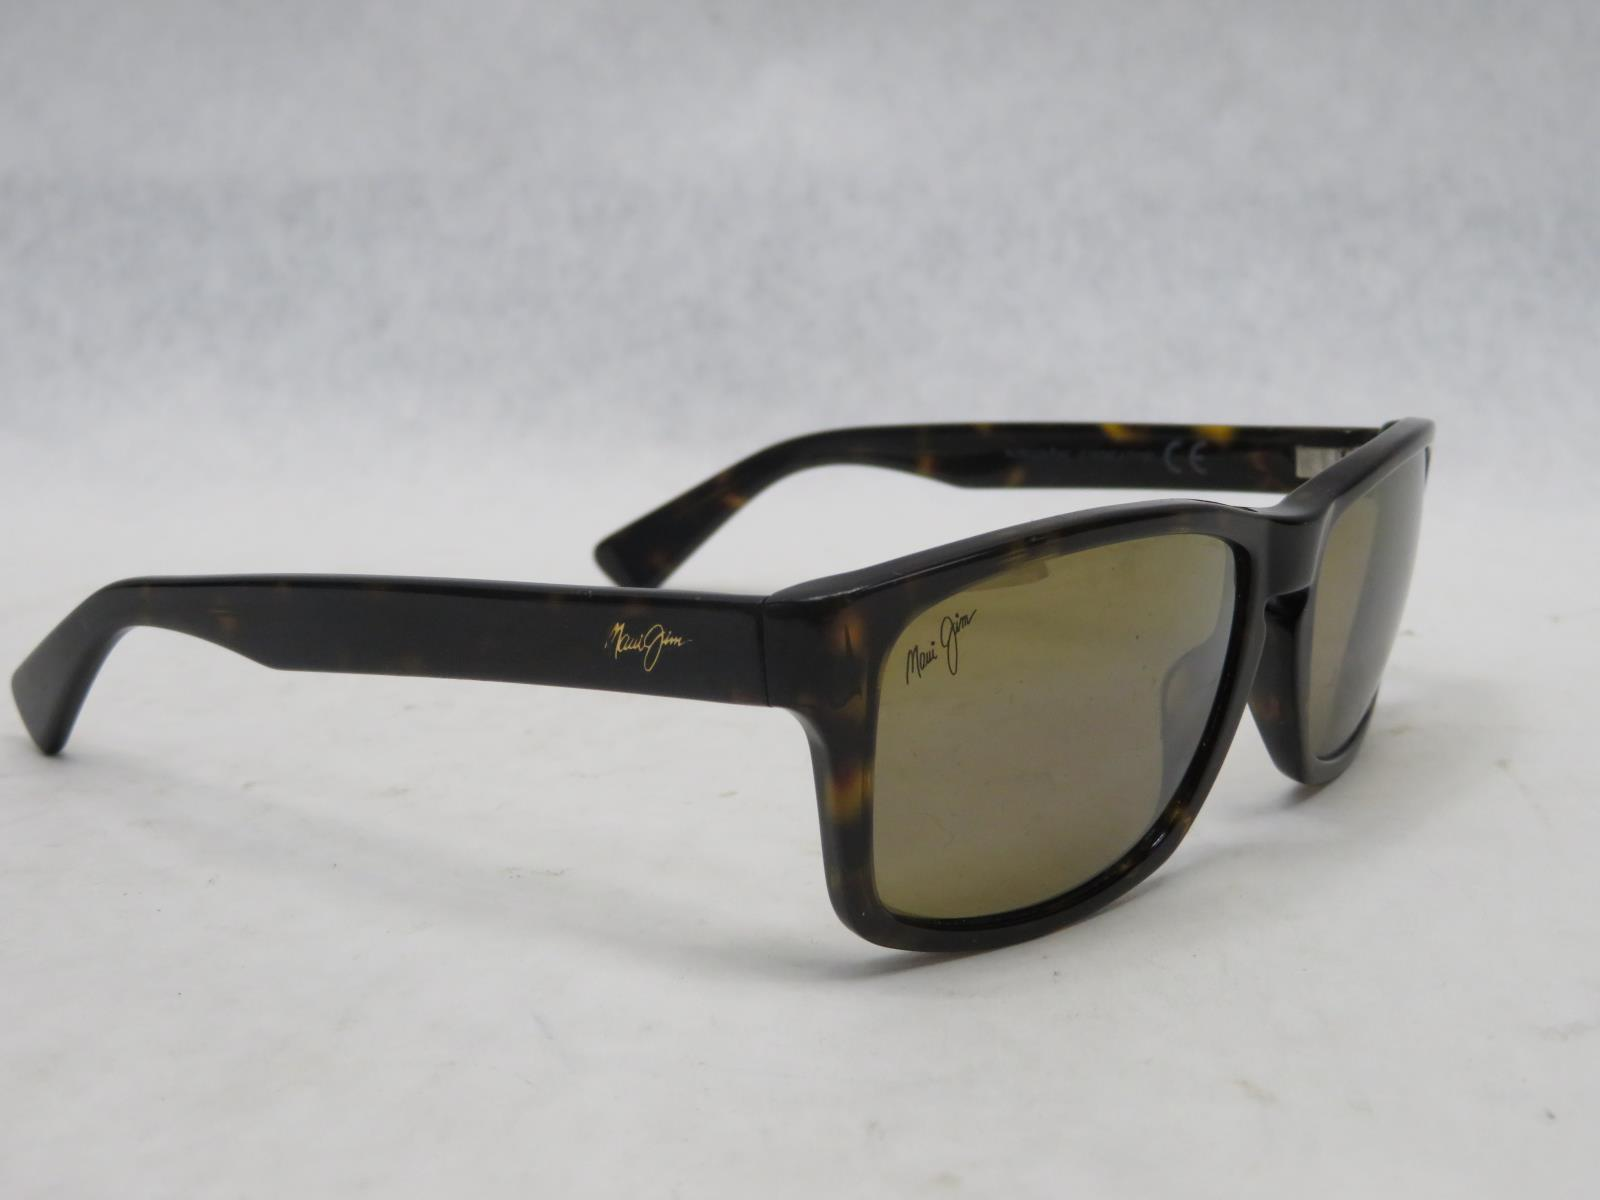 7426e8fa27b Maui Jim MJ291-10 McGregor Point 58-18 140 5.5in | eBay